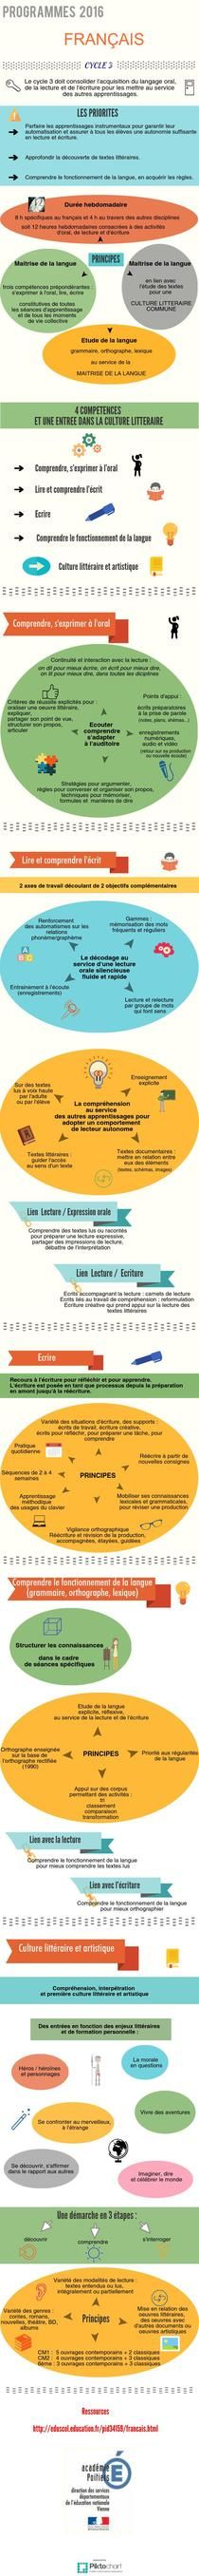 Français Cycle 3 | Piktochart Infographic Editor